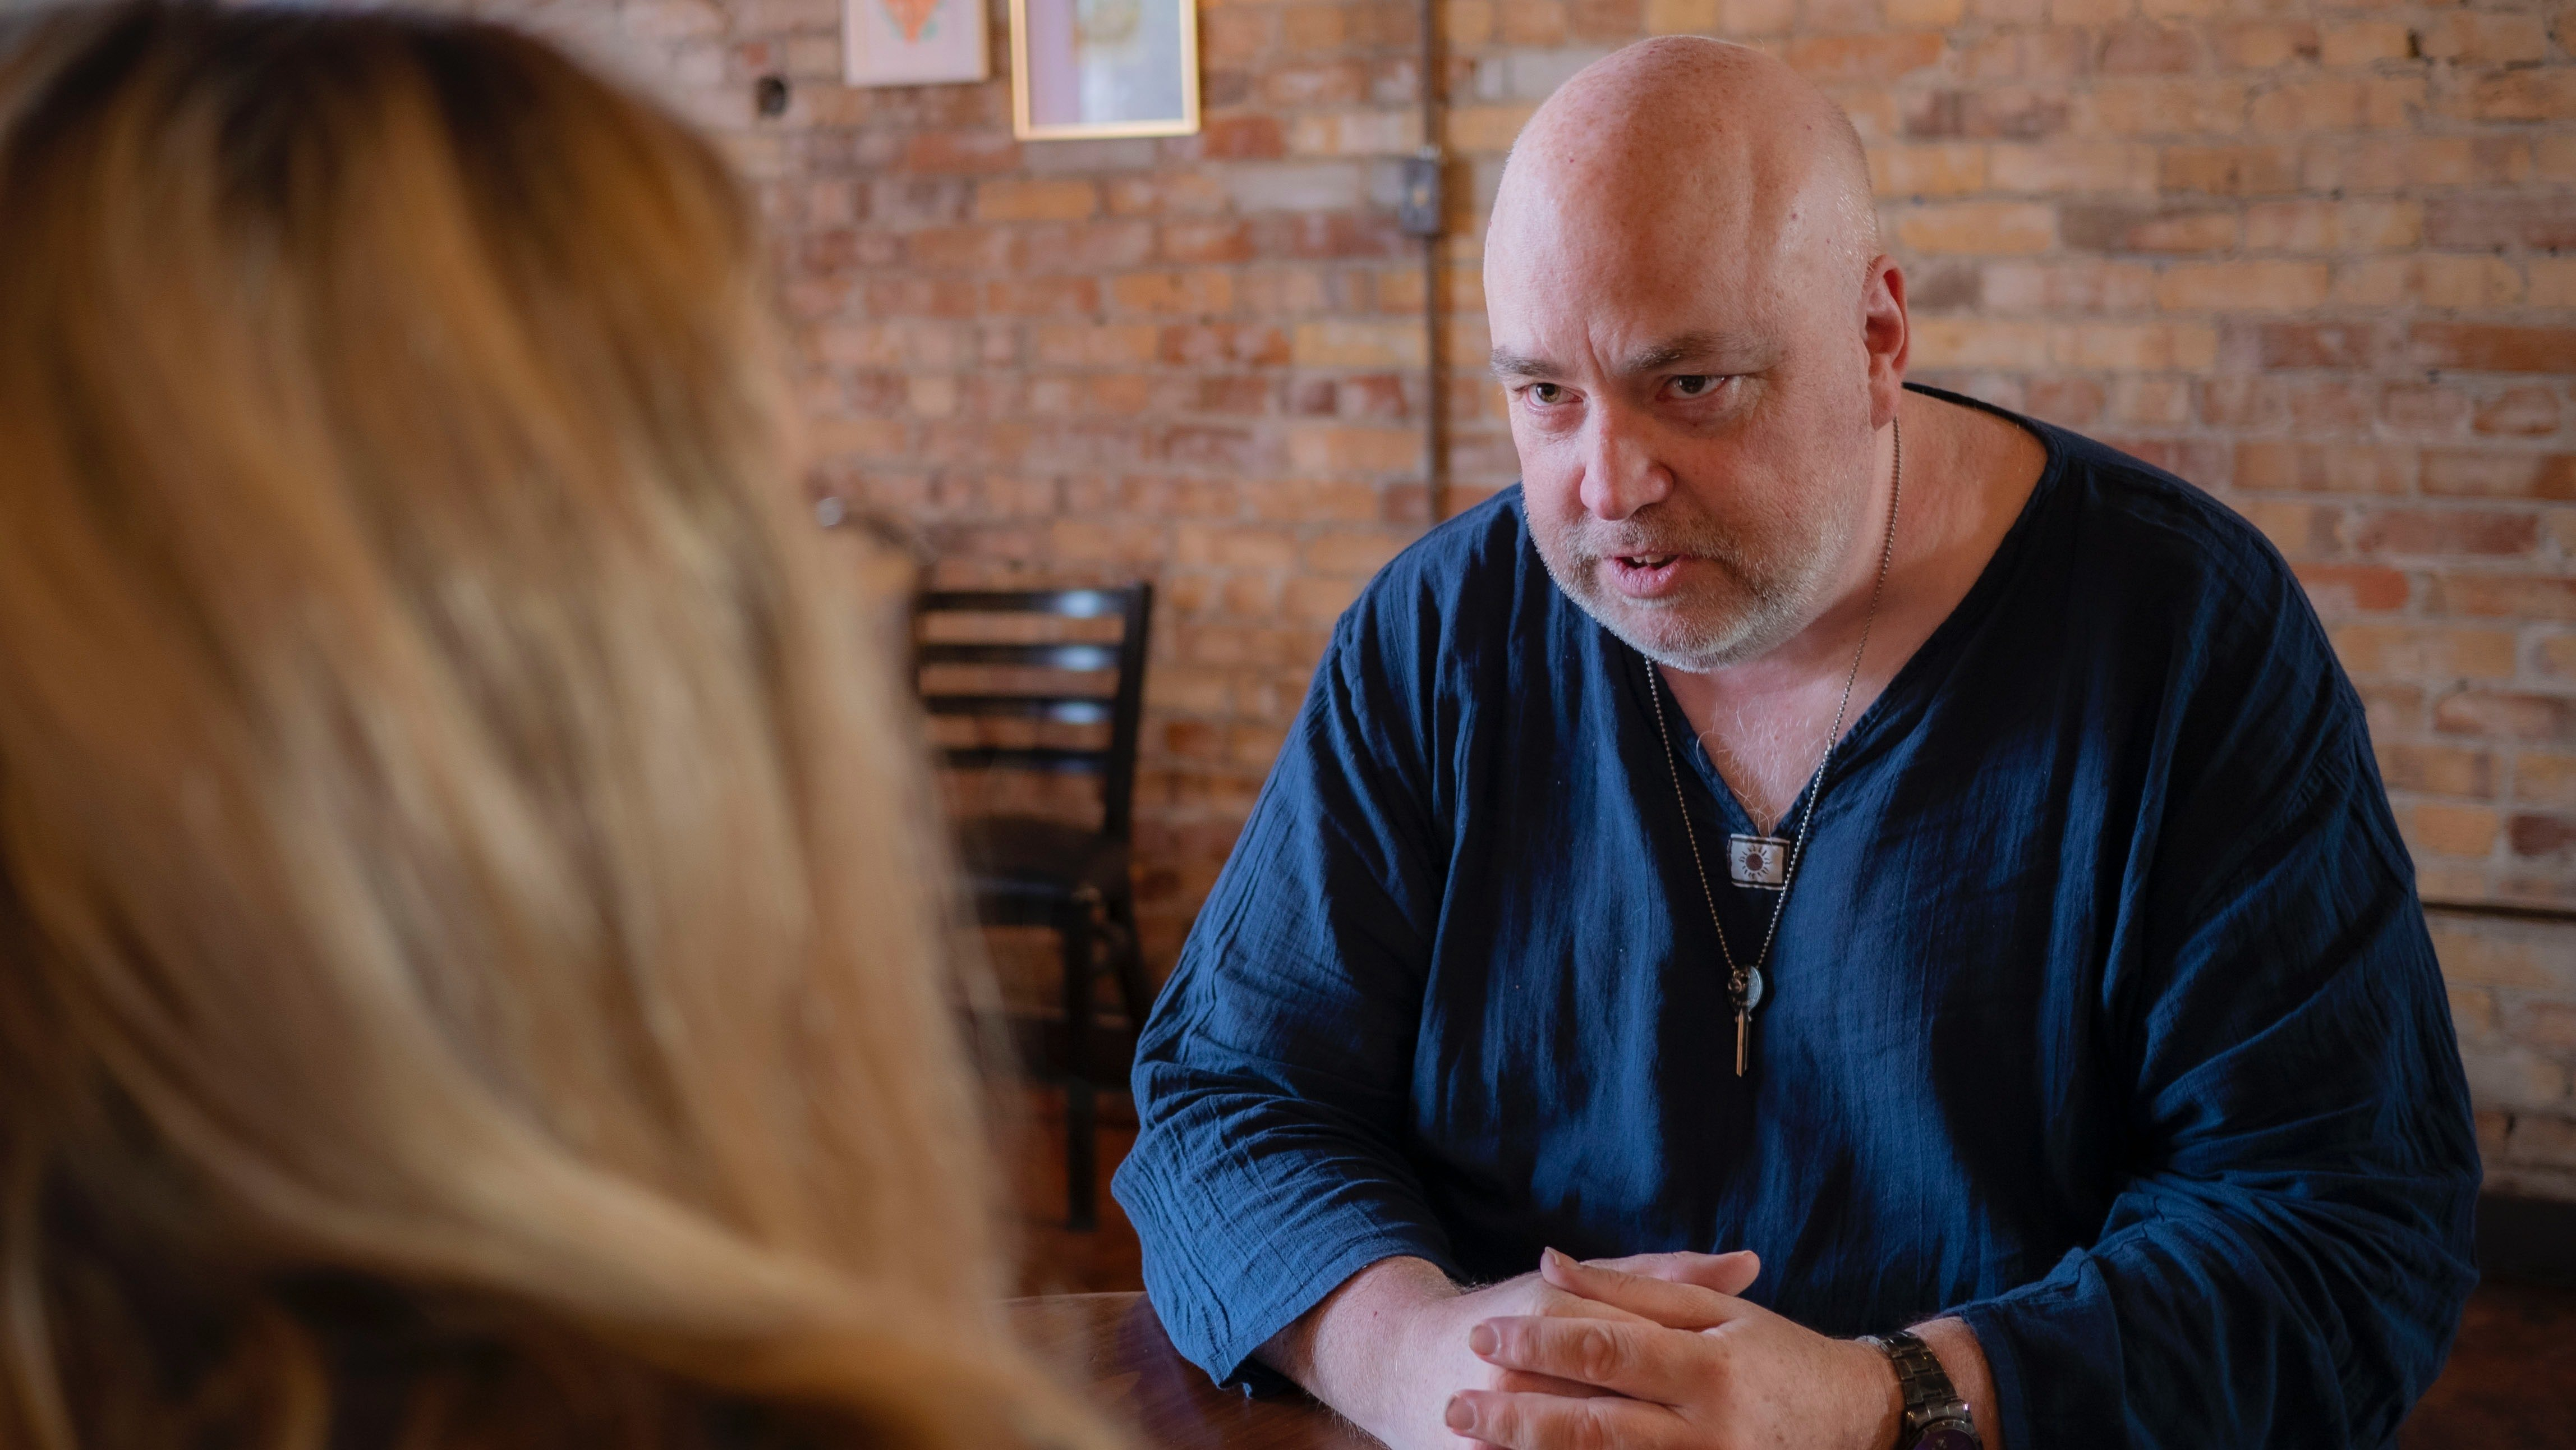 Infuriated man argues with a young woman   Photo: Pexels